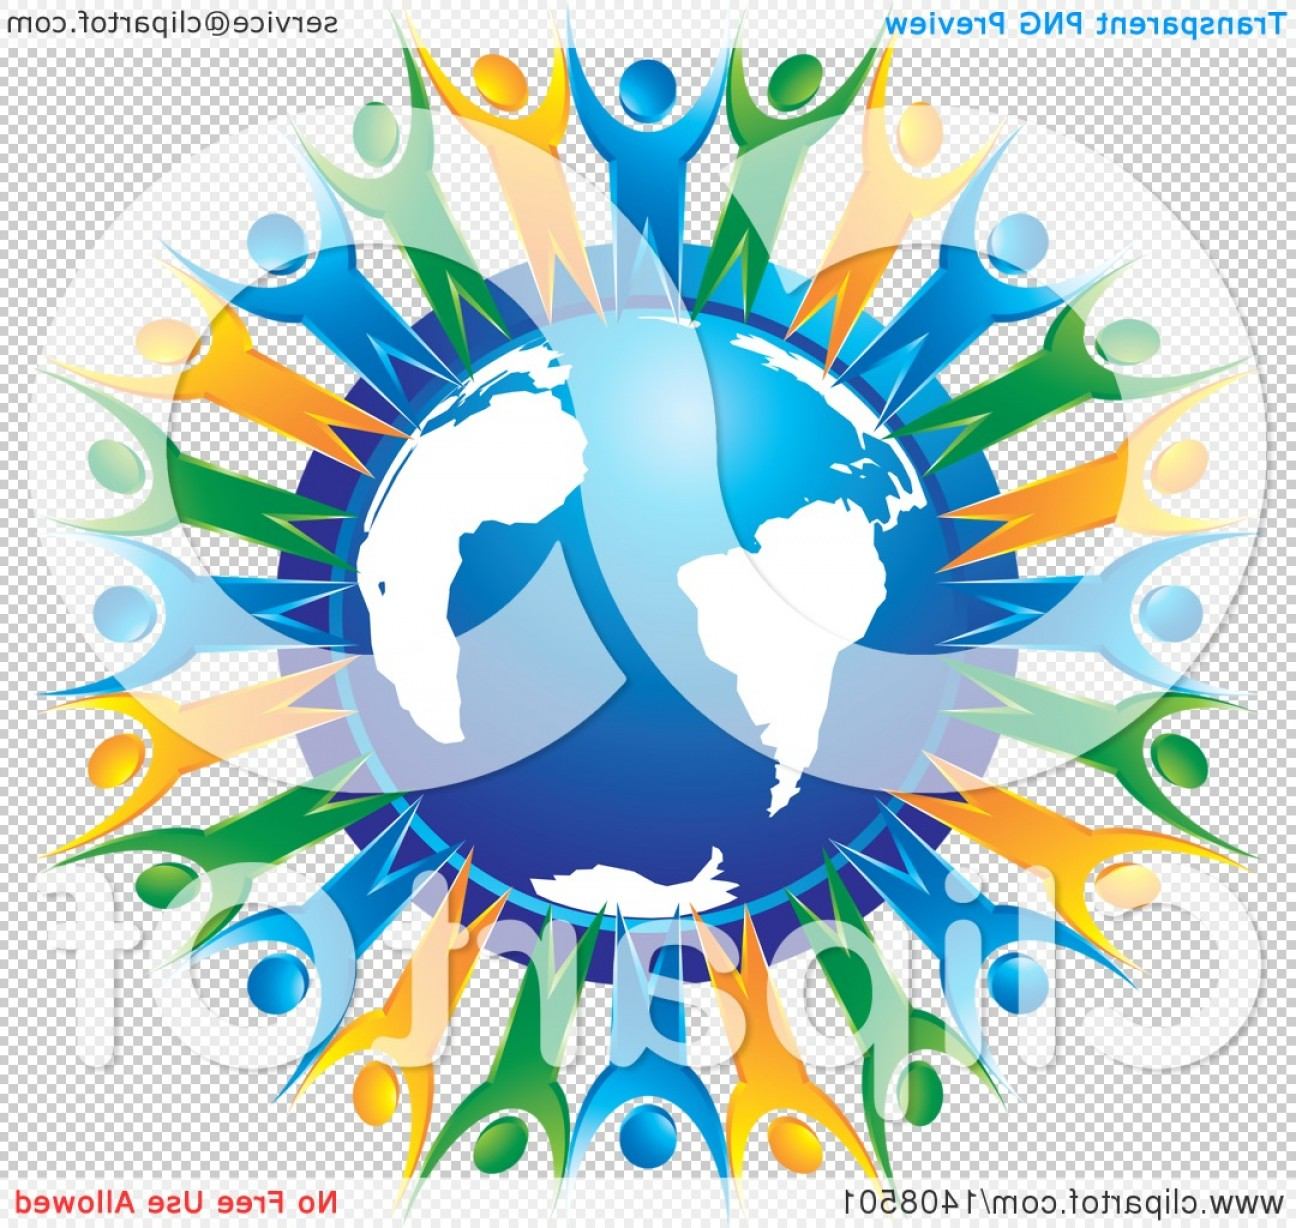 Globe Vector Clip Art Transparent Orange: Blue Orange And Green People Holding Hands And Cheering Around A Blue Globe